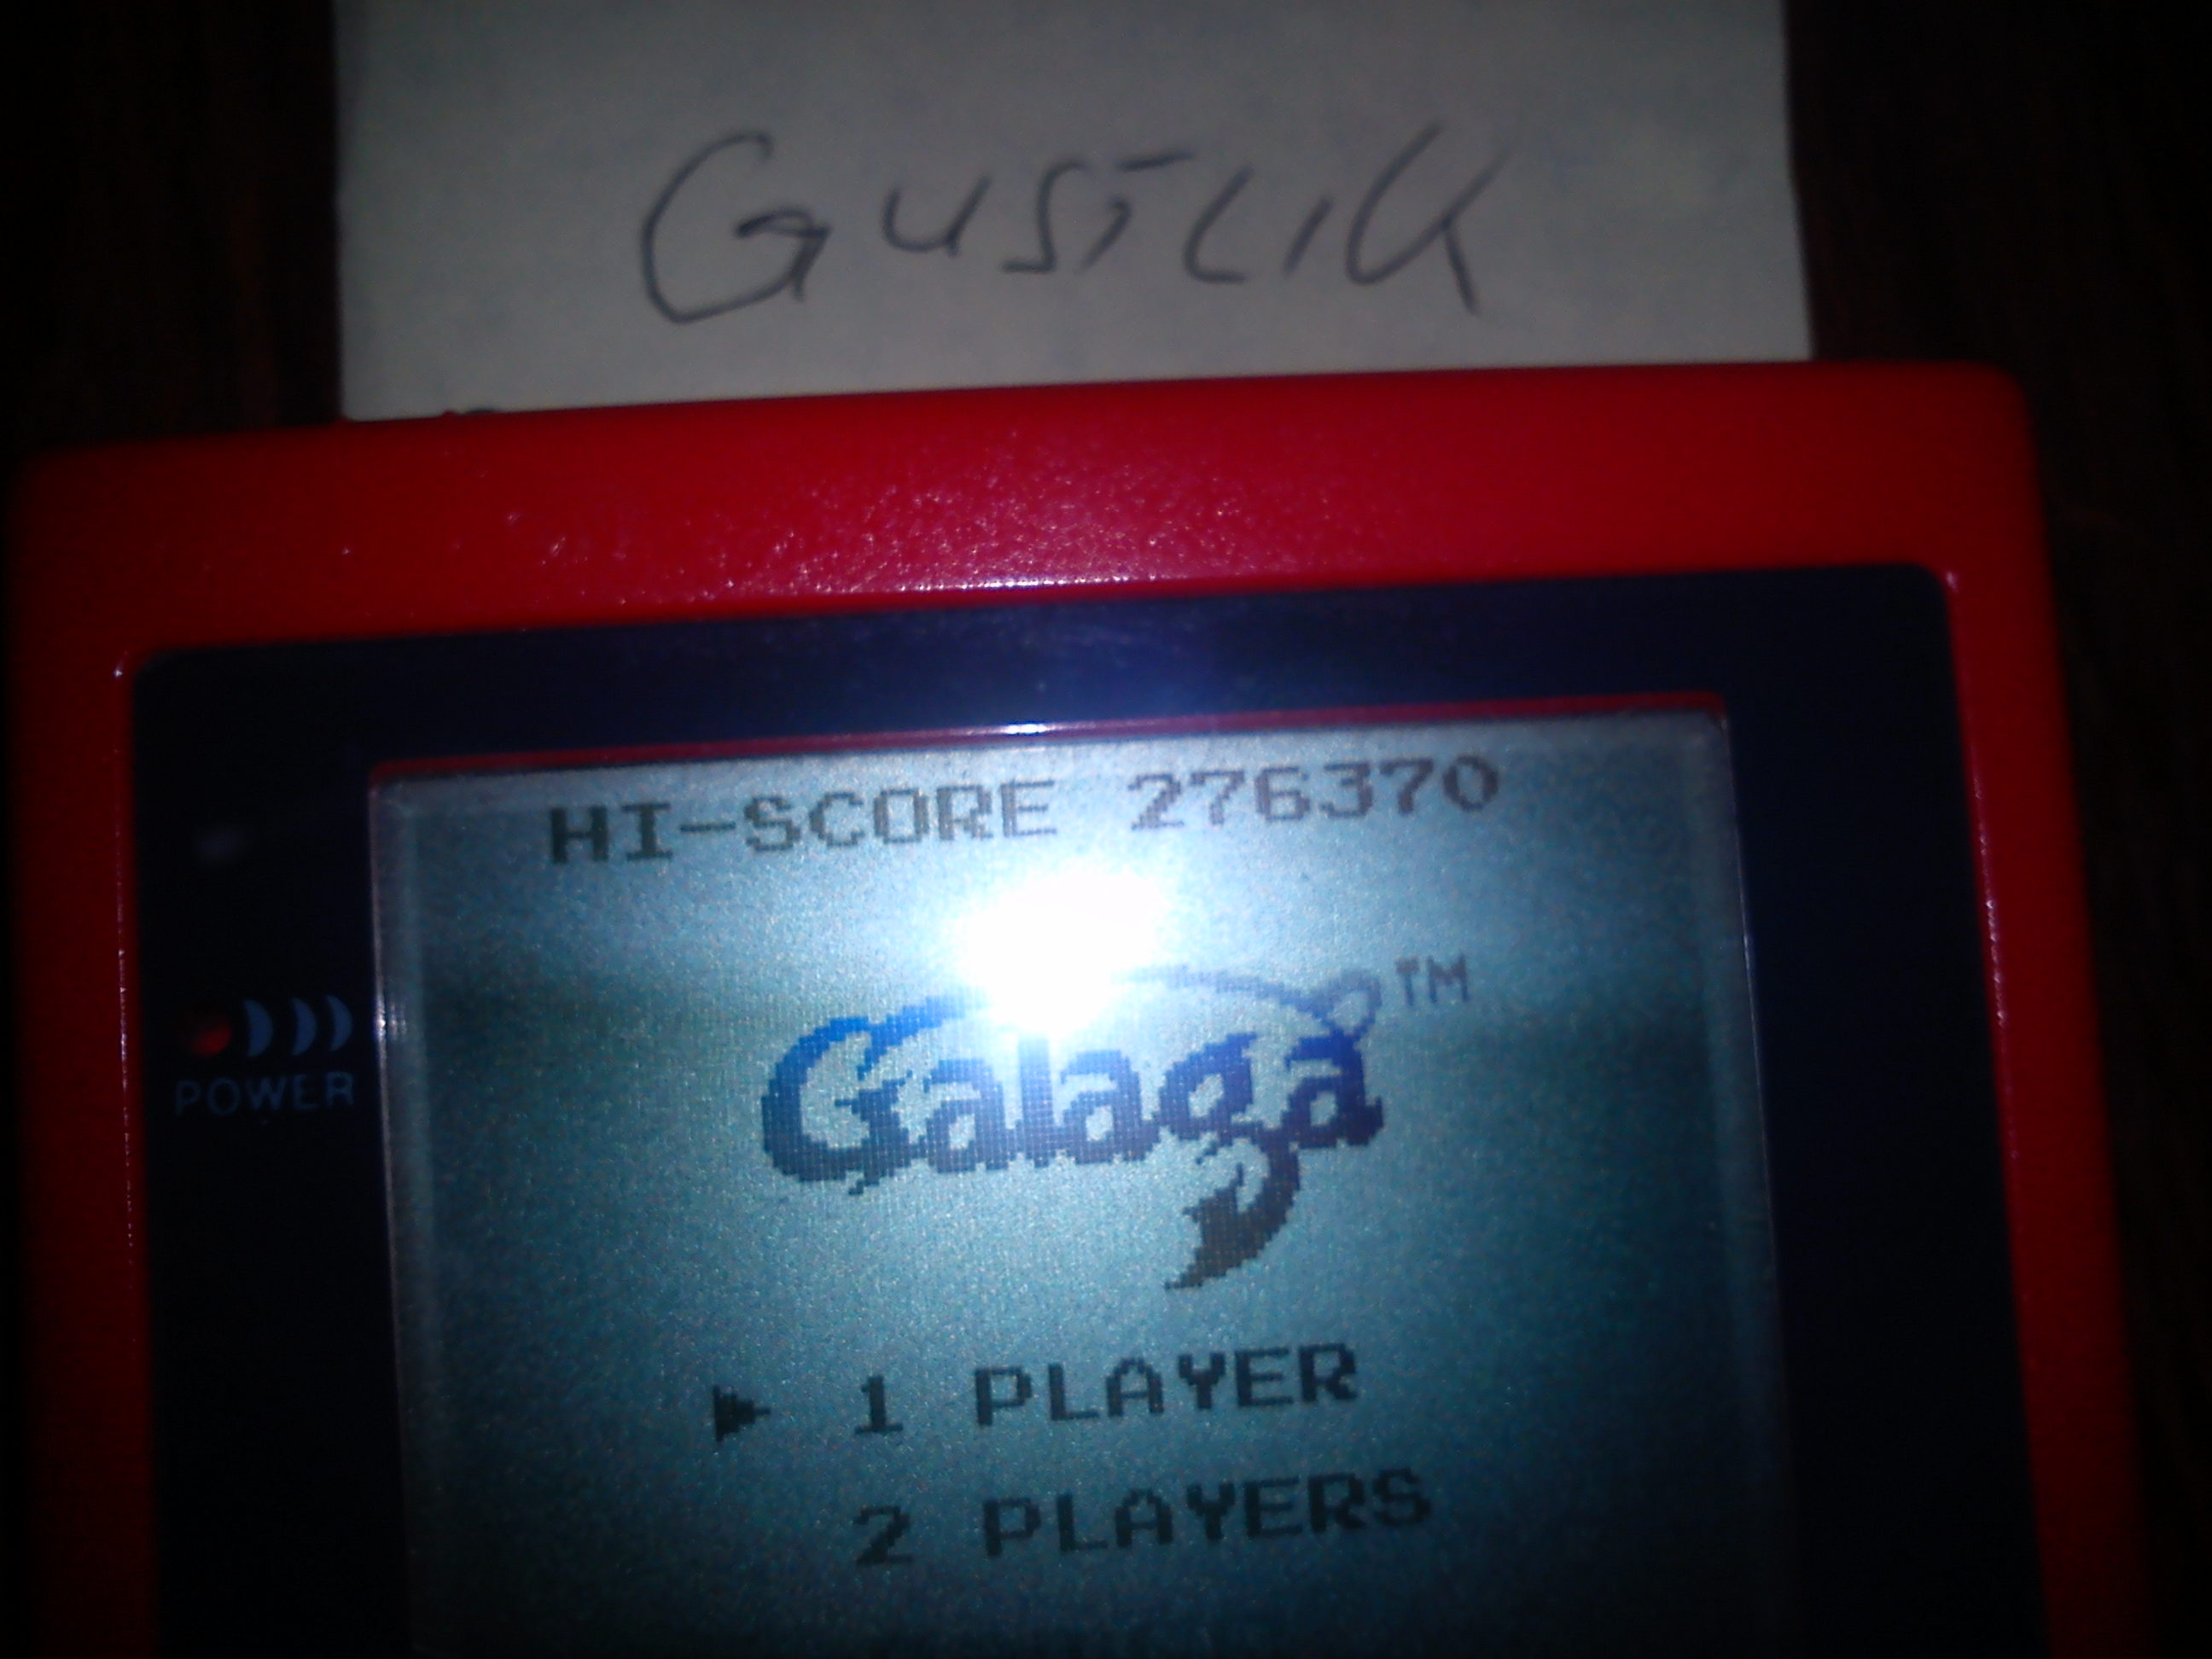 Galaga 276,370 points